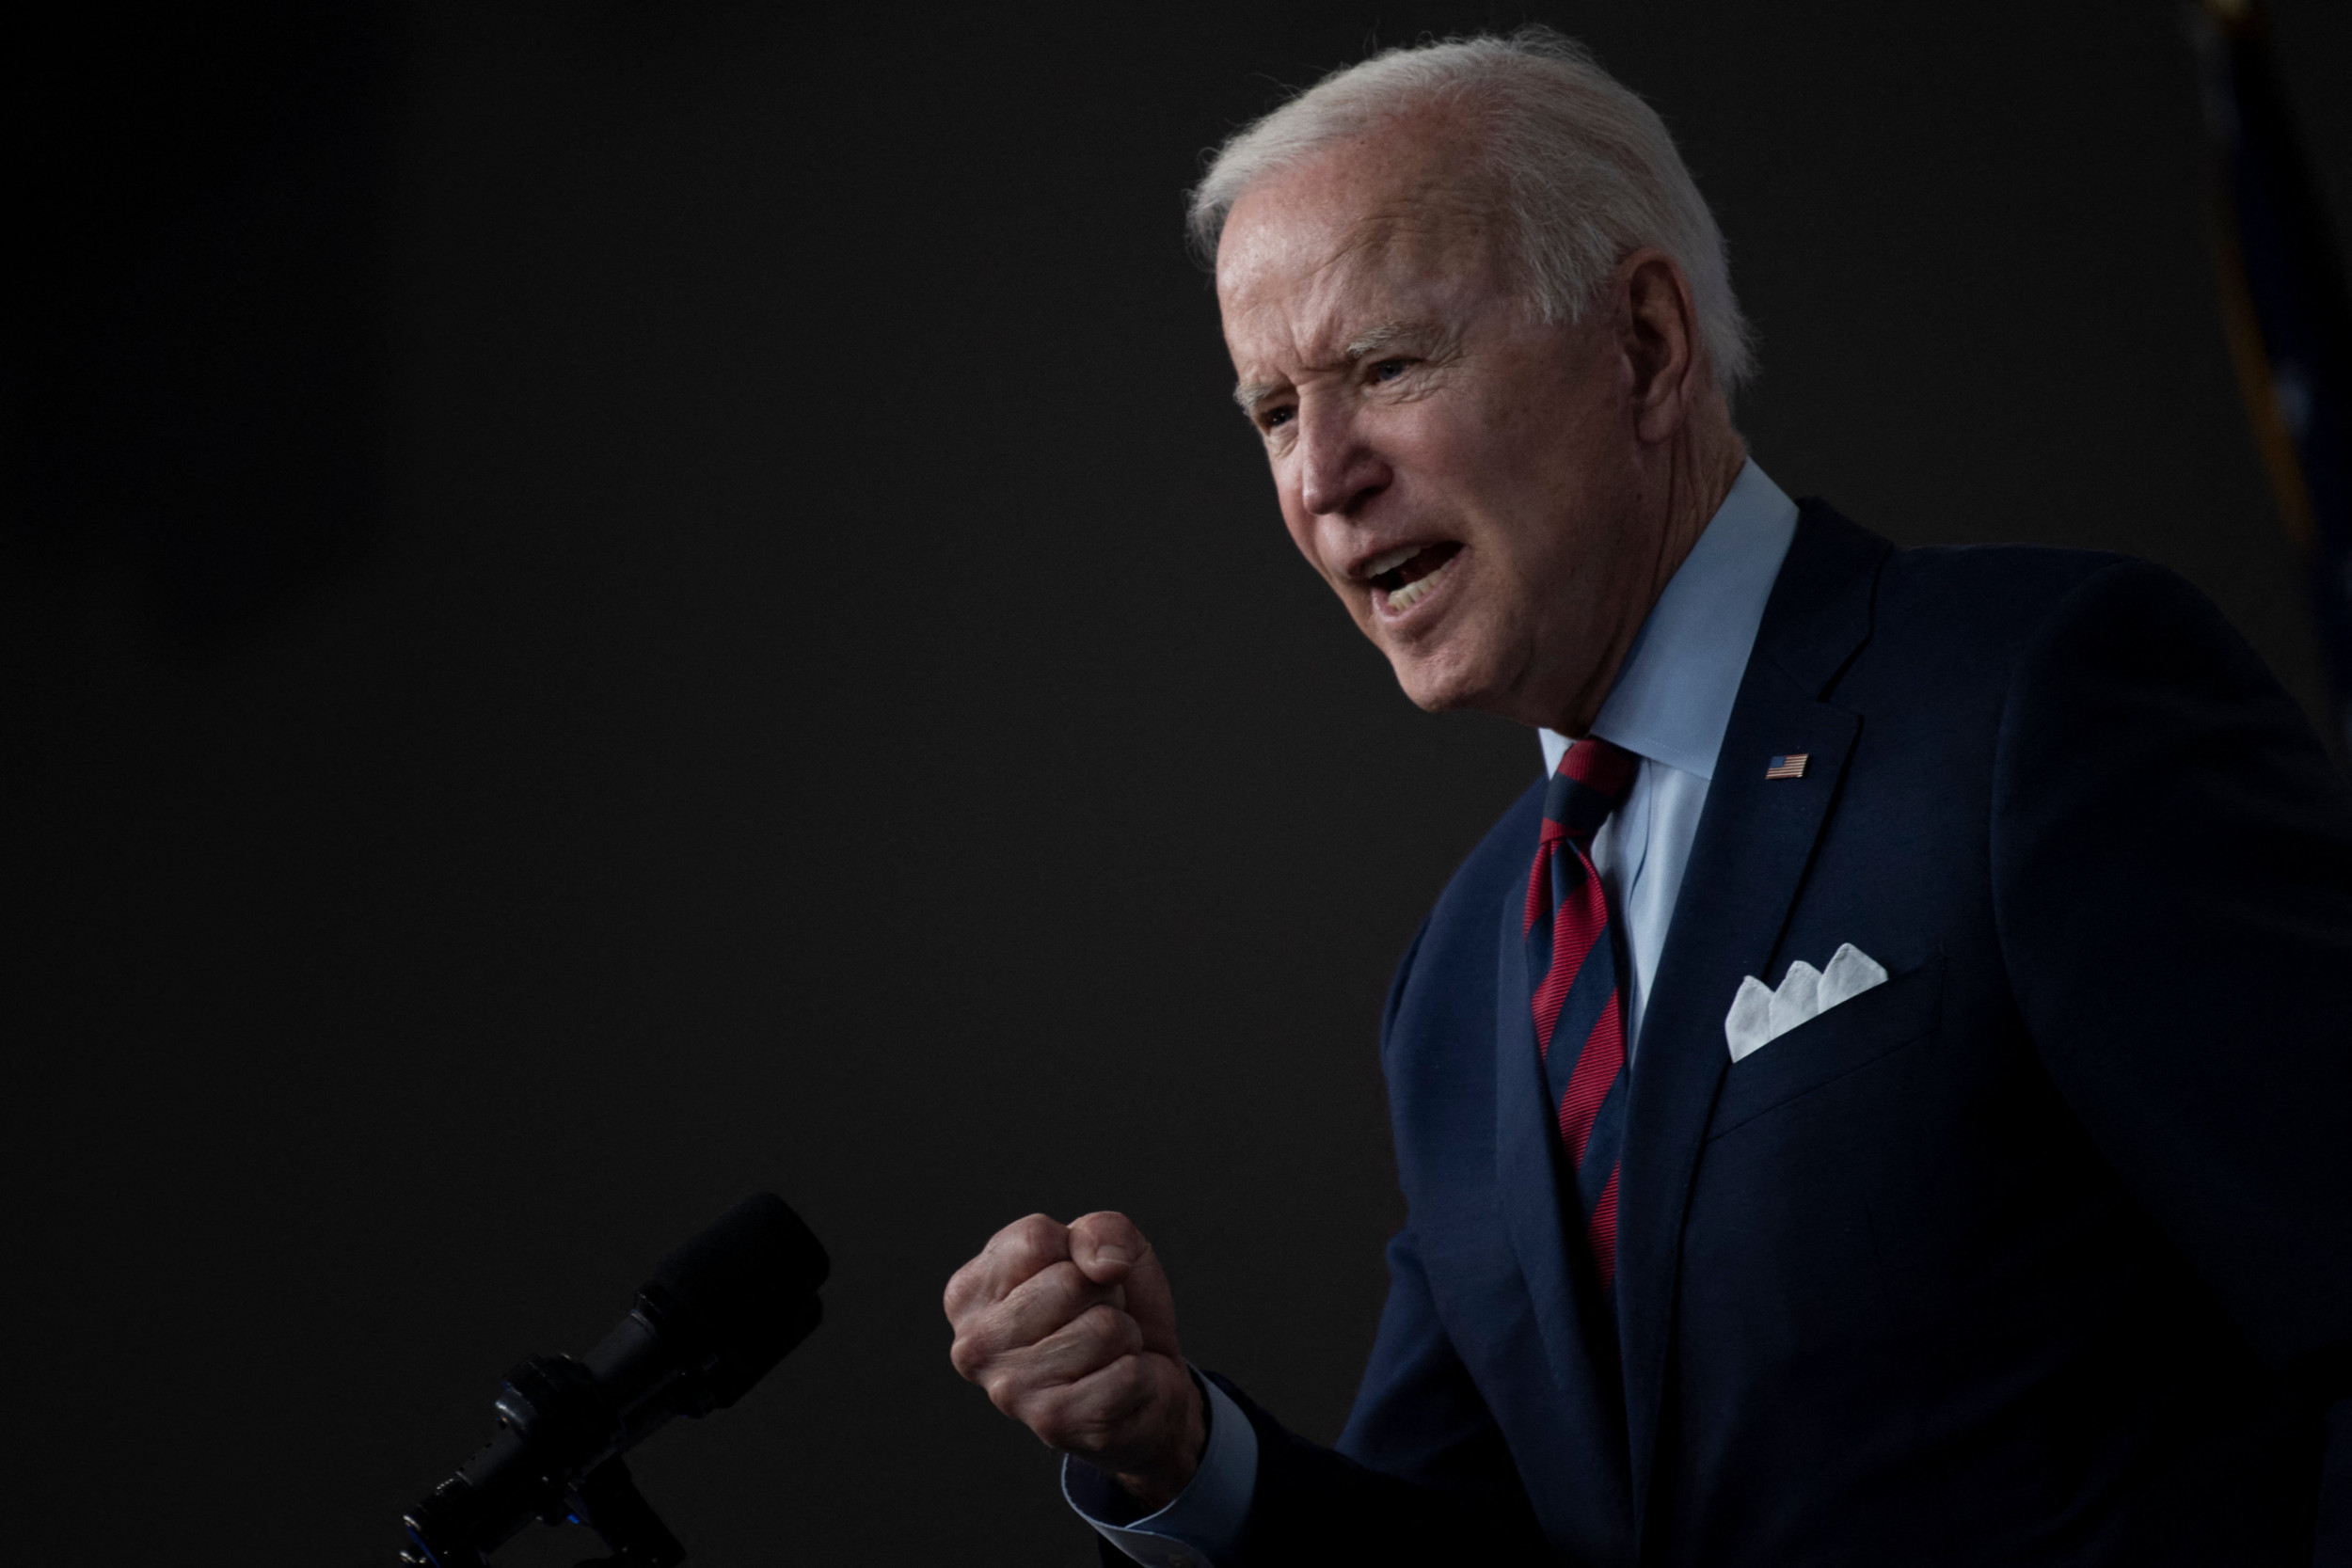 Joe Biden Will Sign These 3 Executive Orders to Curb Gun Violence